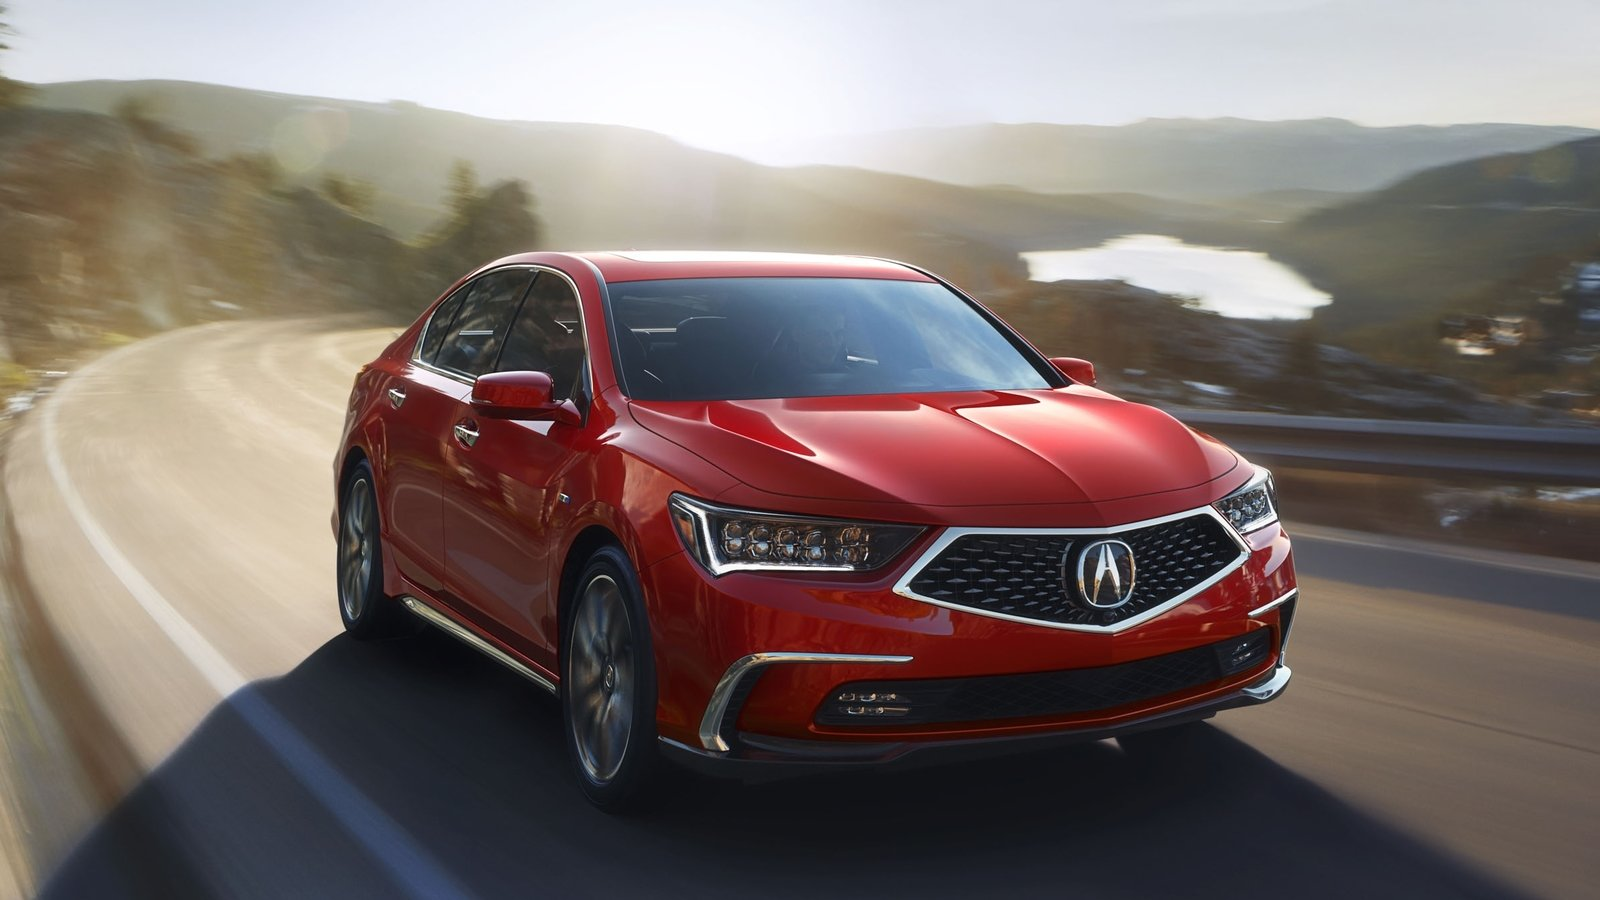 2018 Acura RLX Pictures, Photos, Wallpapers. | Top Speed